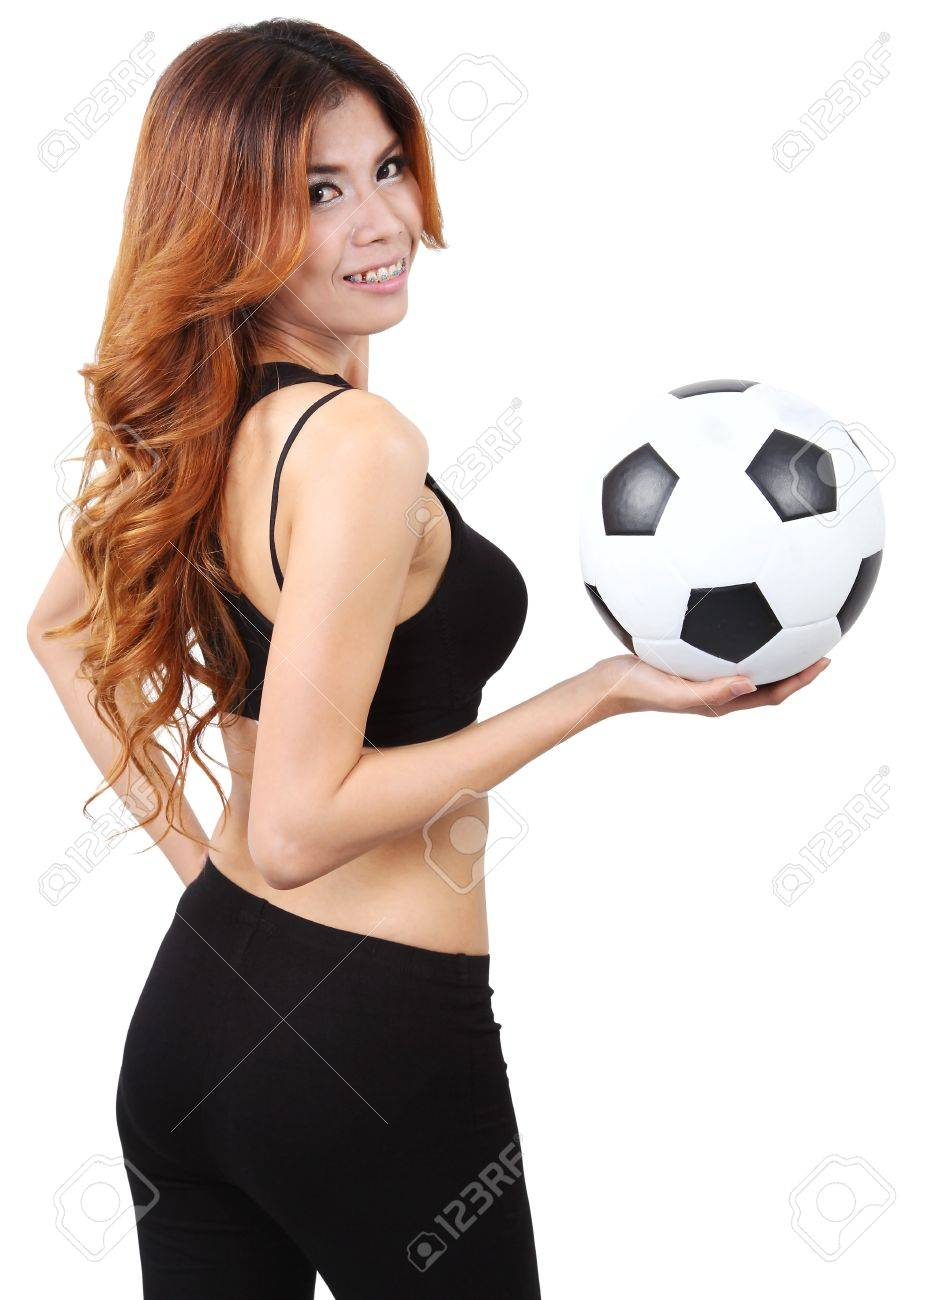 Image of woman holding a football on right hand and white background Stock Photo - 18212454